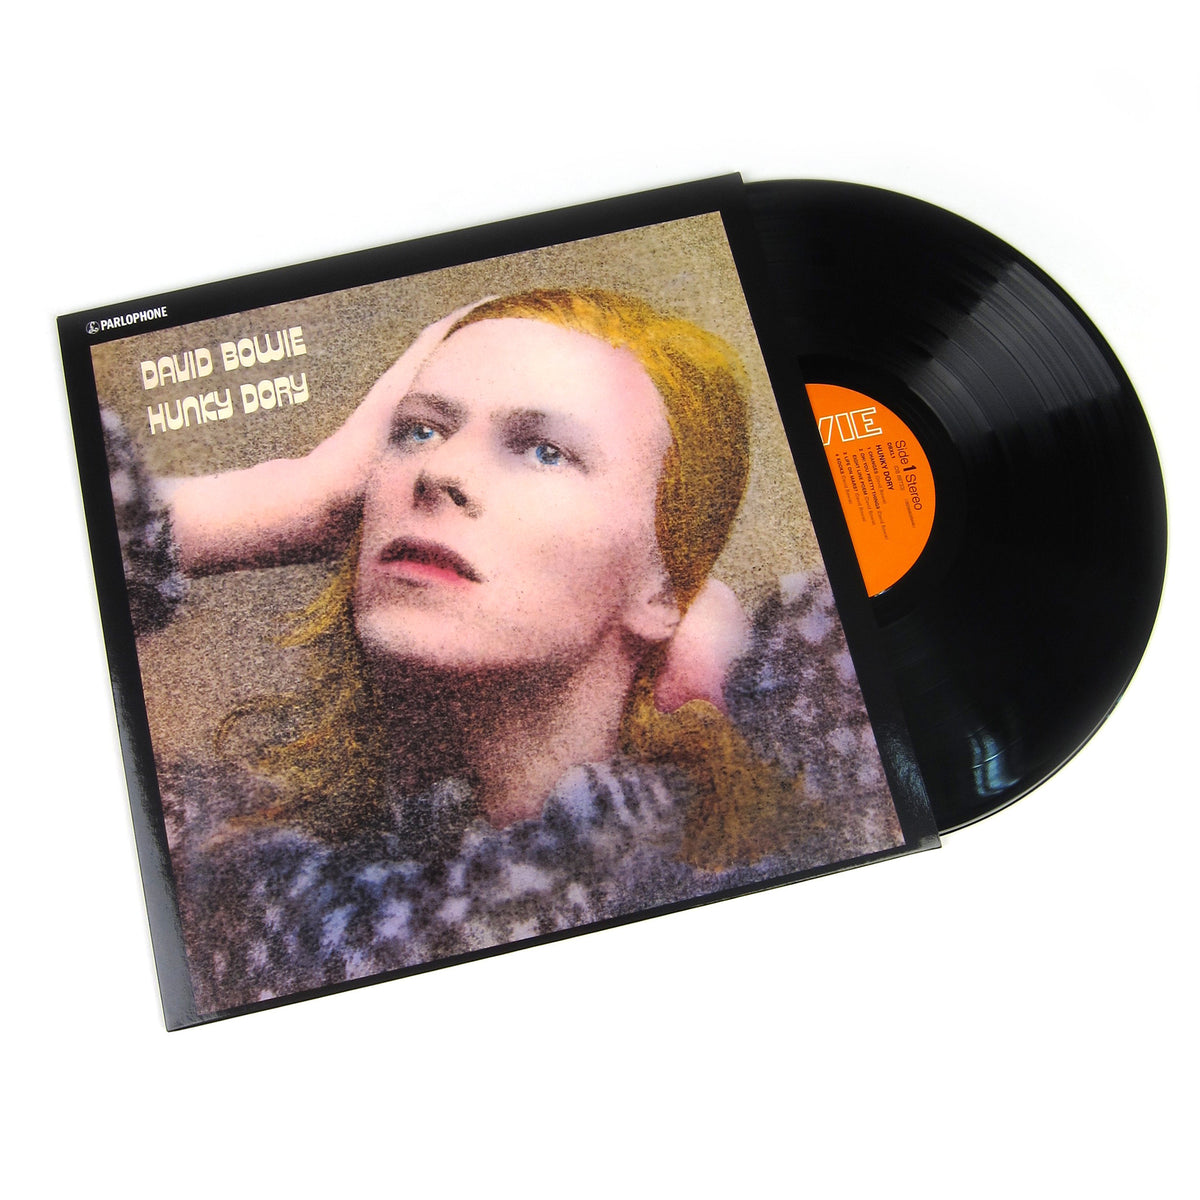 David Bowie: Hunky Dory (180g) Vinyl LP